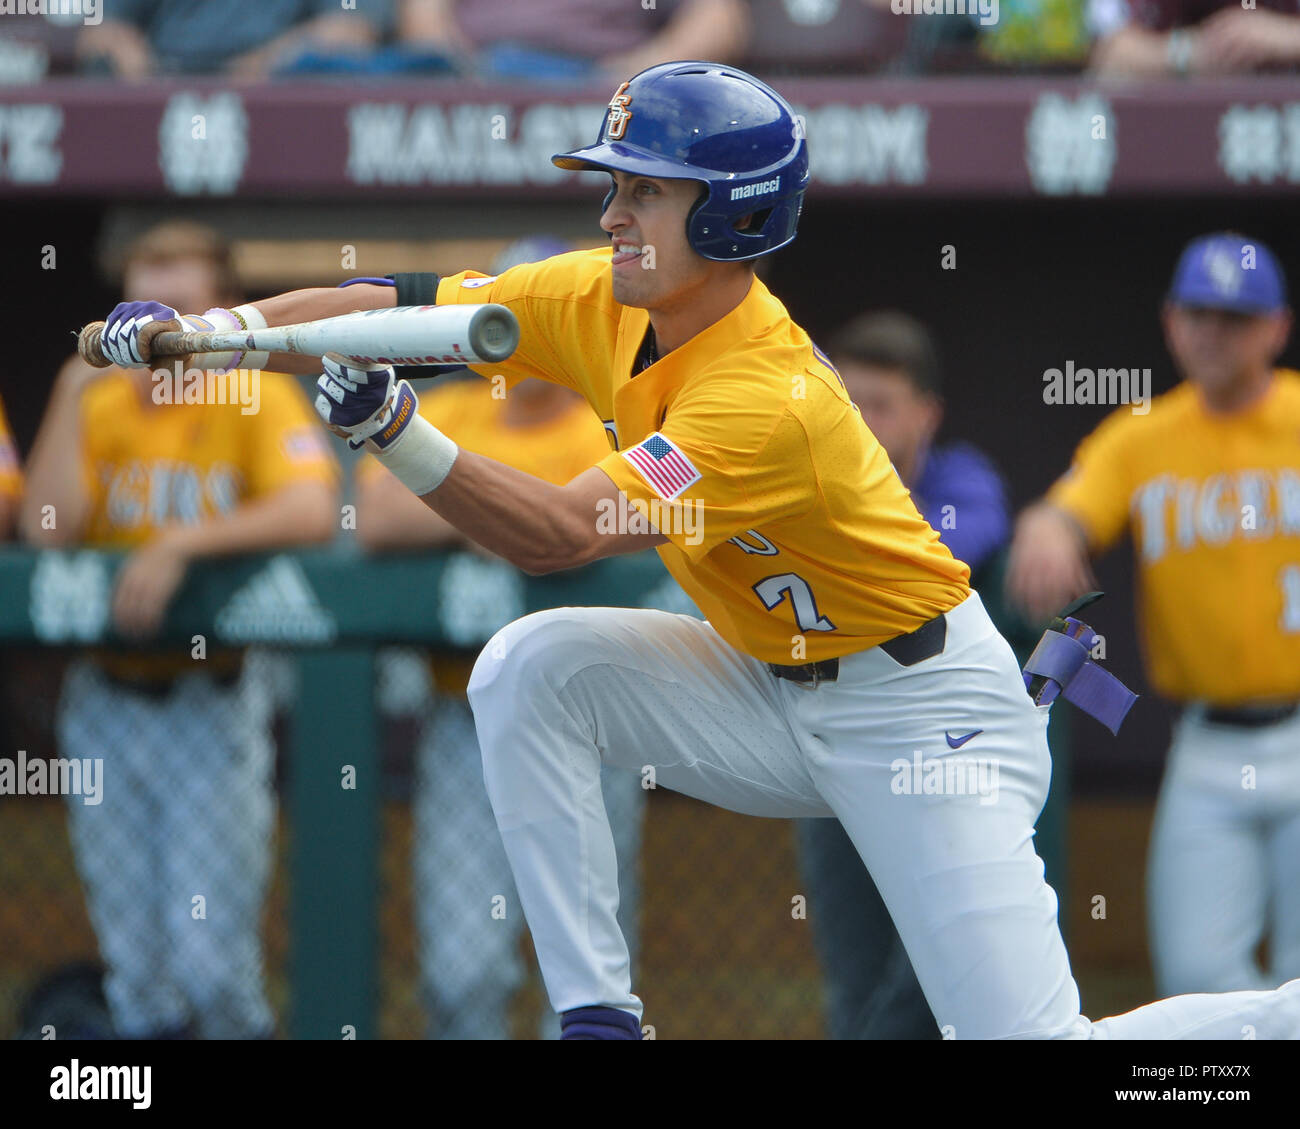 Mississippi, USA.  30th Mar, 2019. LSU outfielder, Giovanni DiGiacomo (7), in action during the NCAA baseball game between the LSU Tigers and the Mississippi State Bulldogs at Dudy Noble Field in Starkville, MS. LSU defeated Mississippi State, 11-2. Kevin Langley/Sports South Media/CSM/Alamy Live News Stock Photo